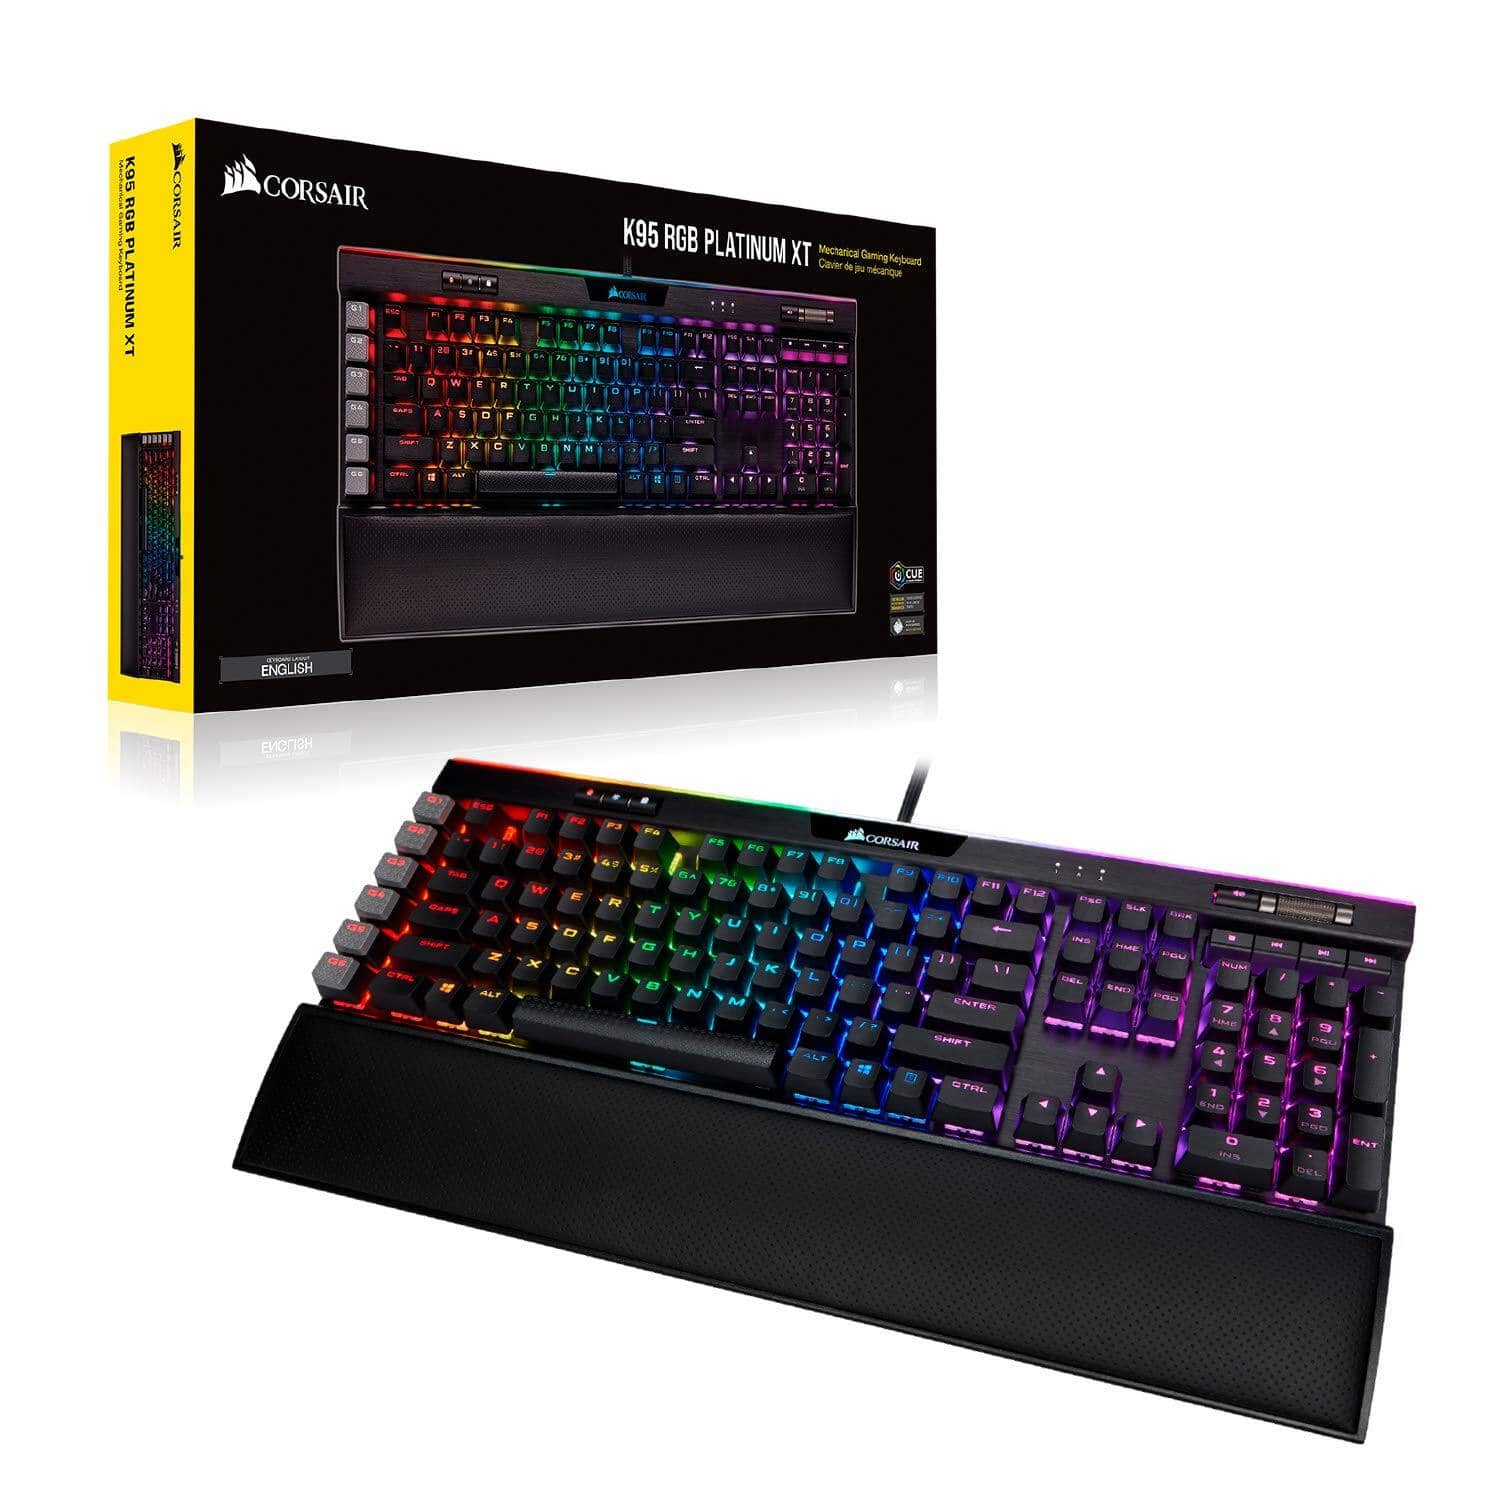 Corsair K95 RGB Platinum XT Mechanical Gaming Keyboard w/ CHERRY MX SPEED Silver (Black) - $169.99 + FS